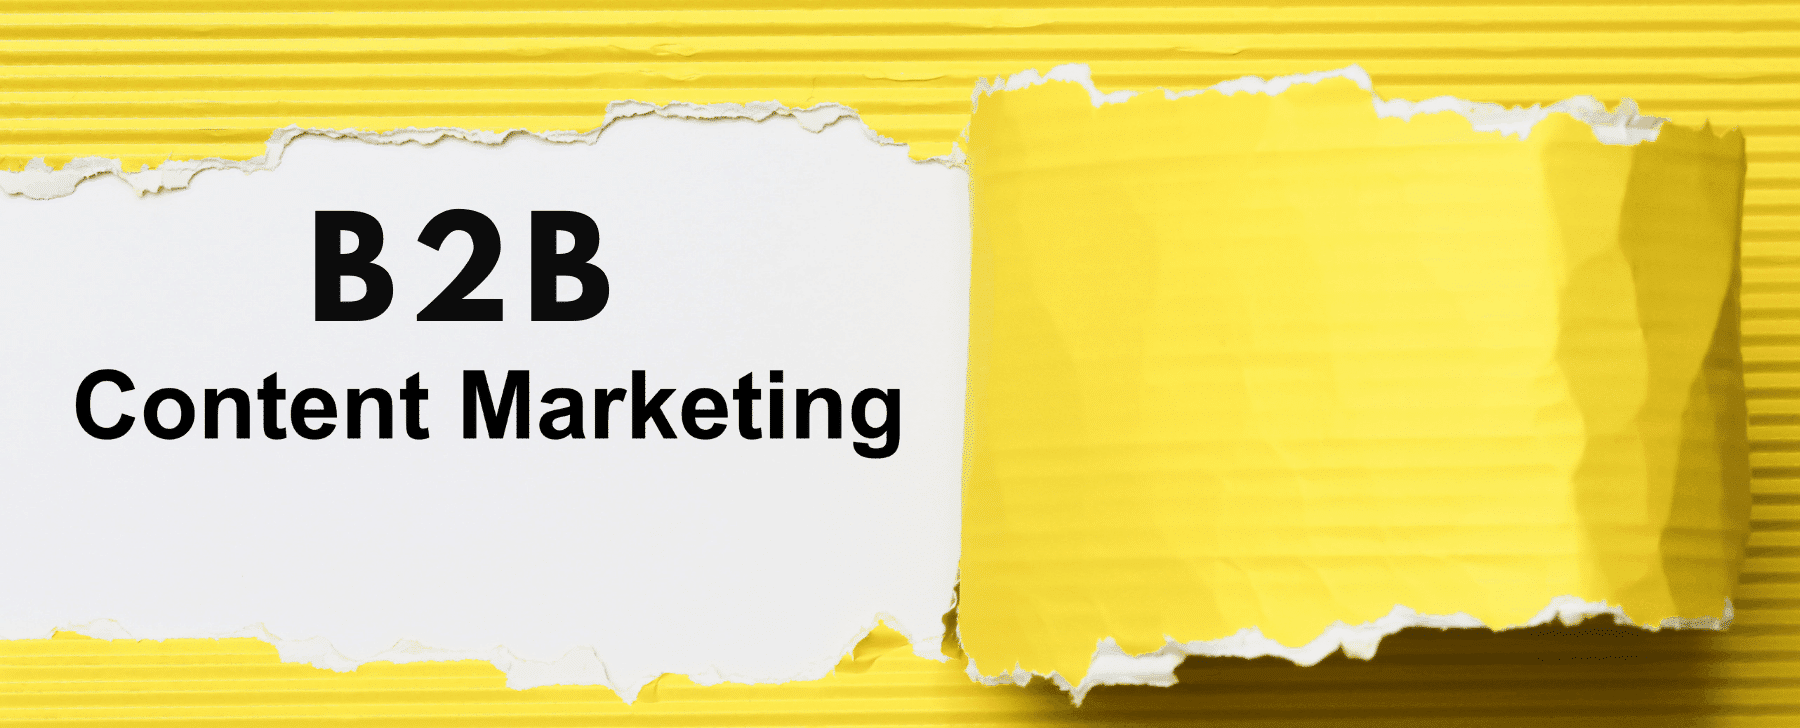 B2B Content Marketing with Examples